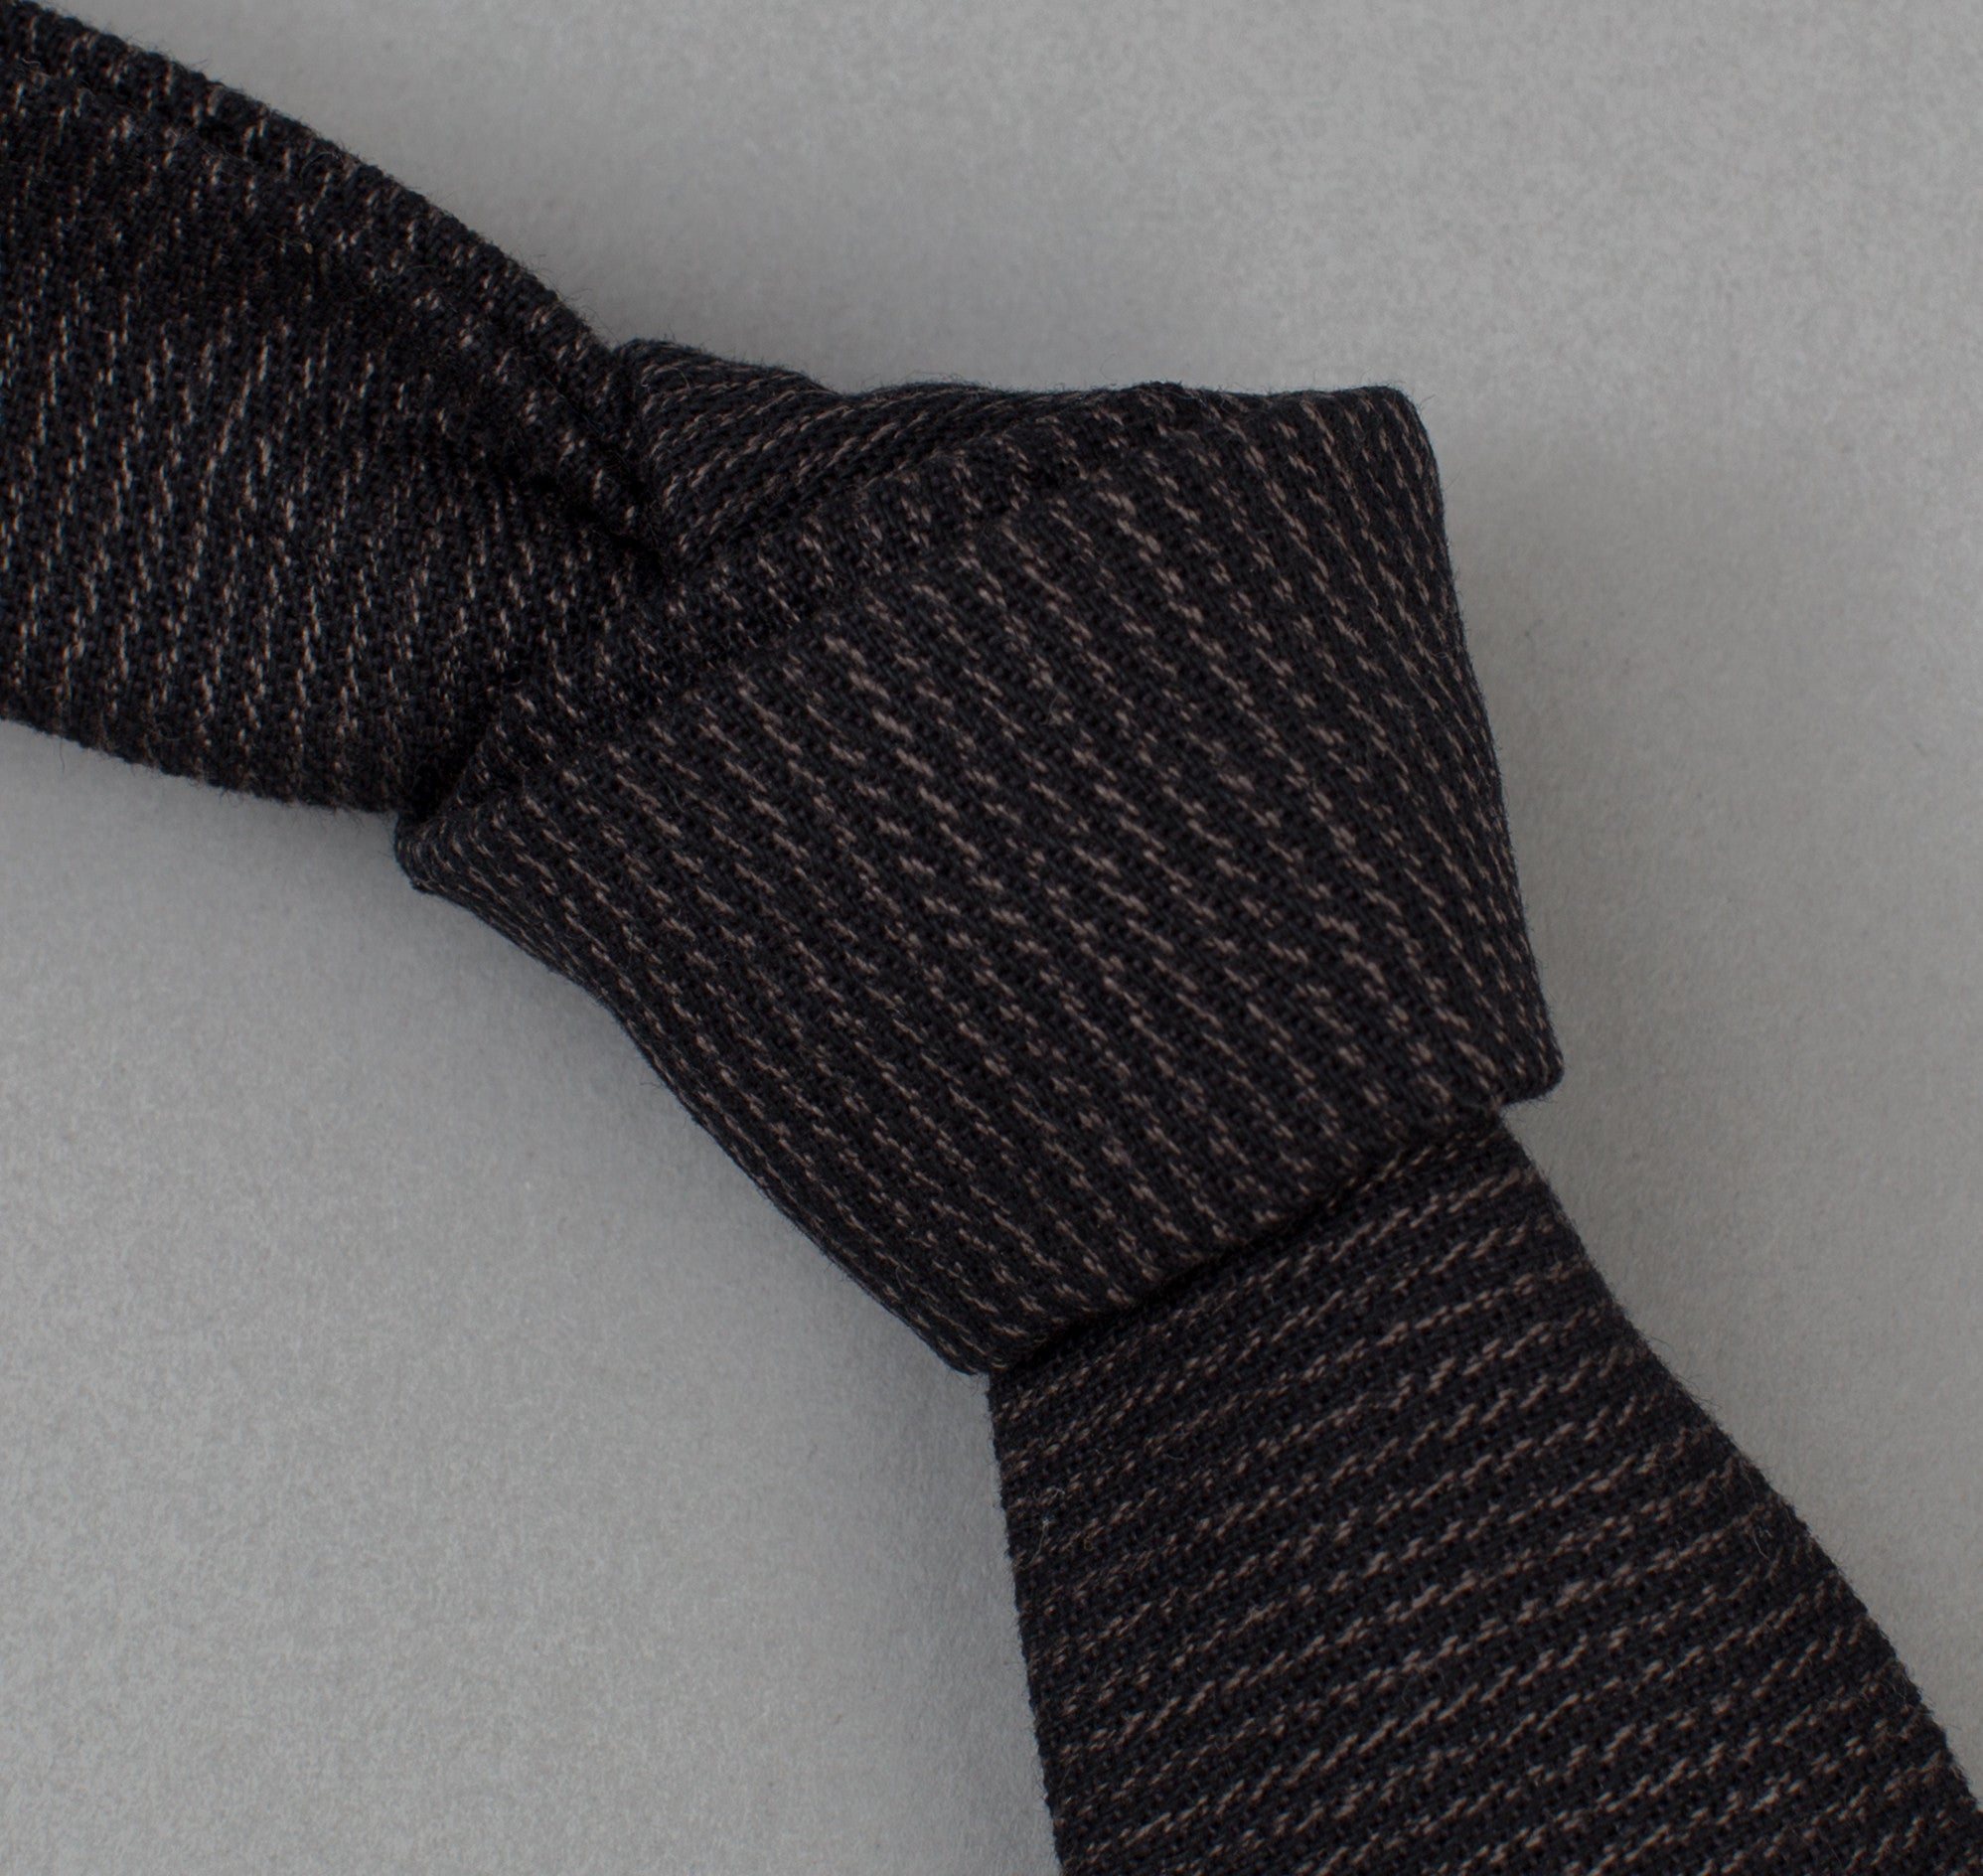 The Hill-Side - 304 - Covert Hickory Stripe Twill Necktie, Black - ST1-304